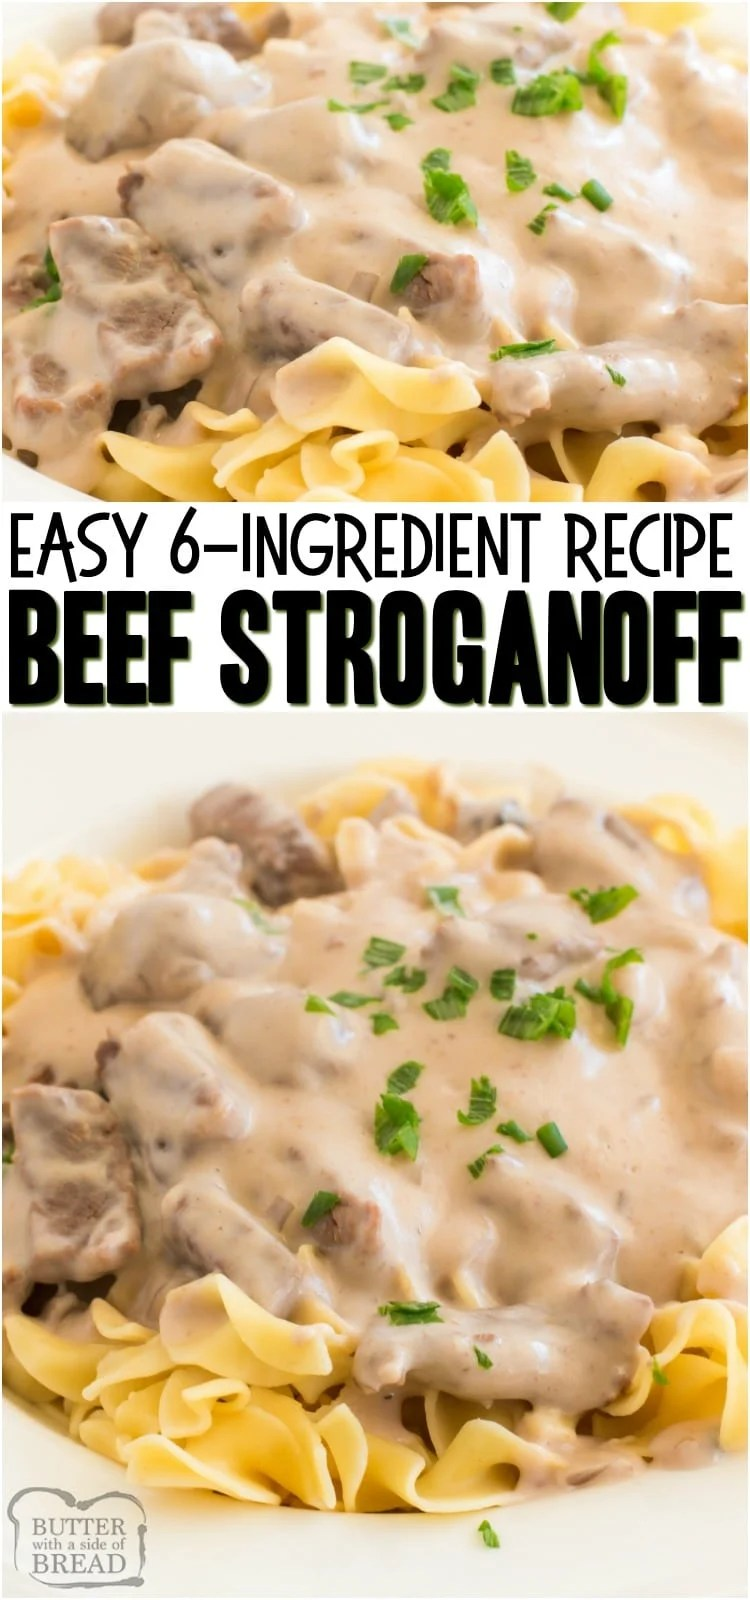 Easy Beef Stroganoff Recipe is a classic, creamy & delicious family dinner recipe.  With just a few simple ingredients, you too can make this mouth watering easy Beef Stroganoff dinner in no time at all.